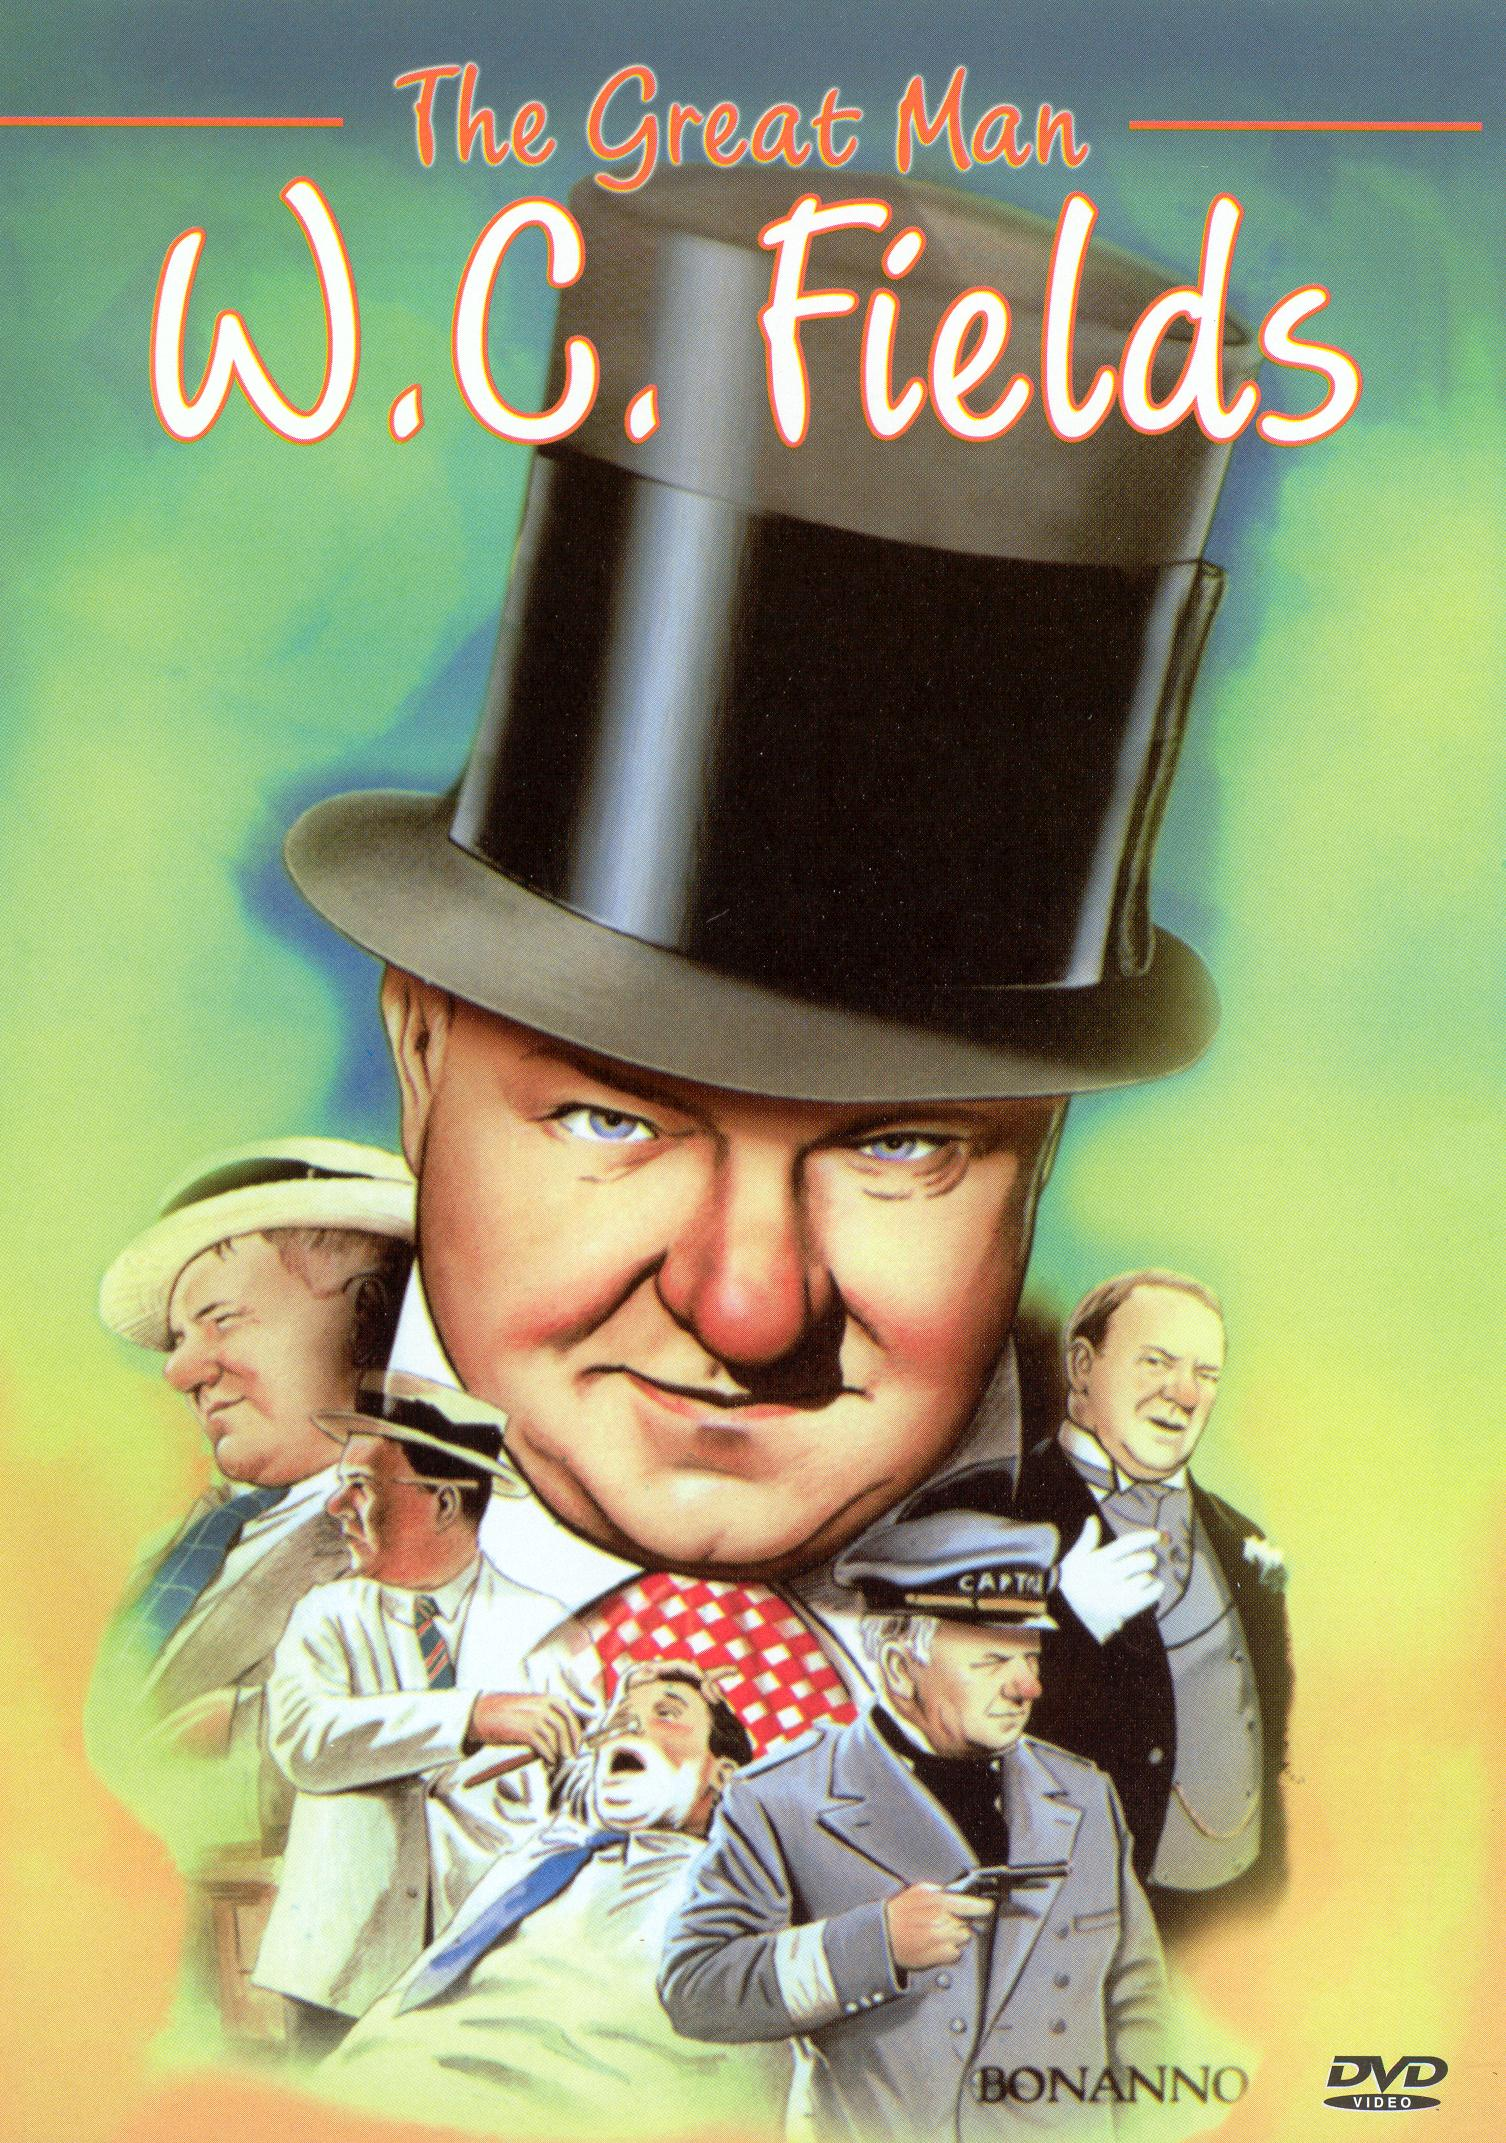 The Great Man W.C. Fields